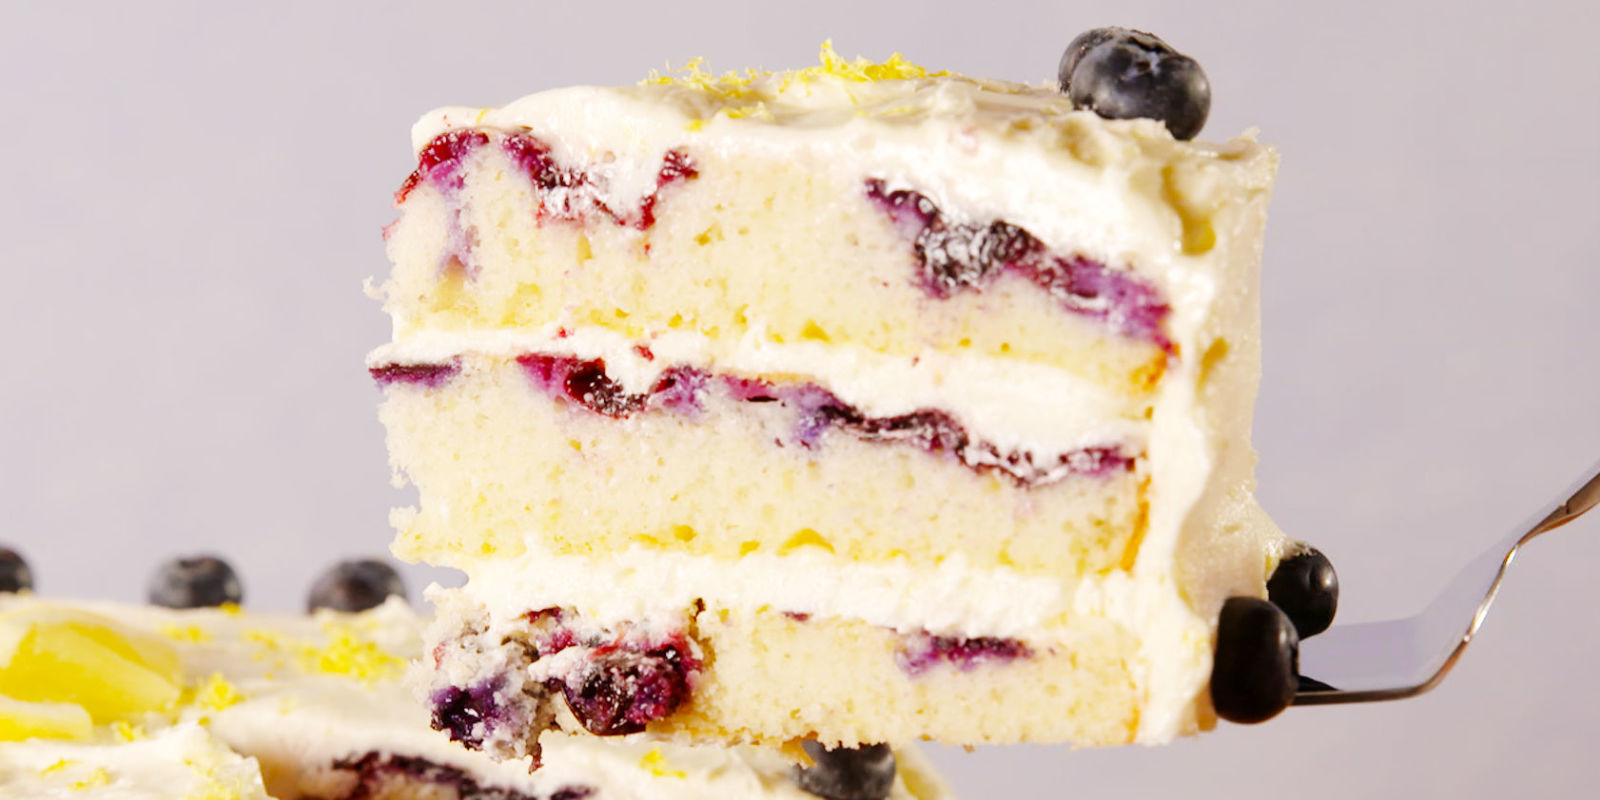 Best Lemon Blueberry Cake Recipe - How to Make Lemon ...